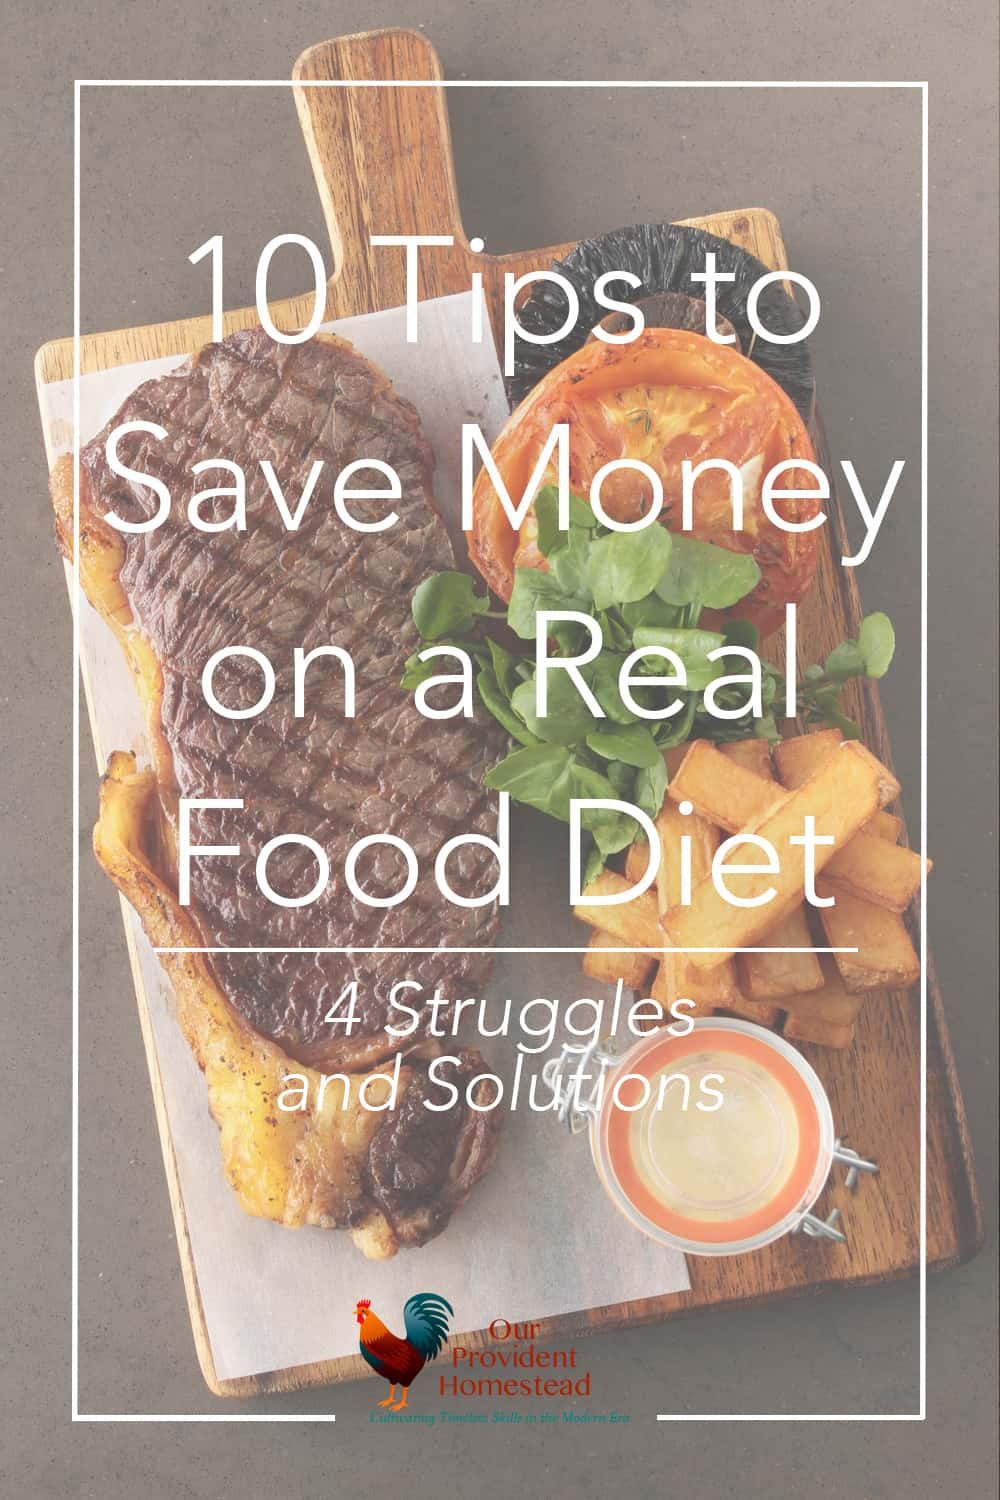 Are you struggling to afford a real food diet? Click here to find 10 tips to help you stick to your budget while eating a real food diet. #realfood #realfooddiet #savingmoney #grocerybudget